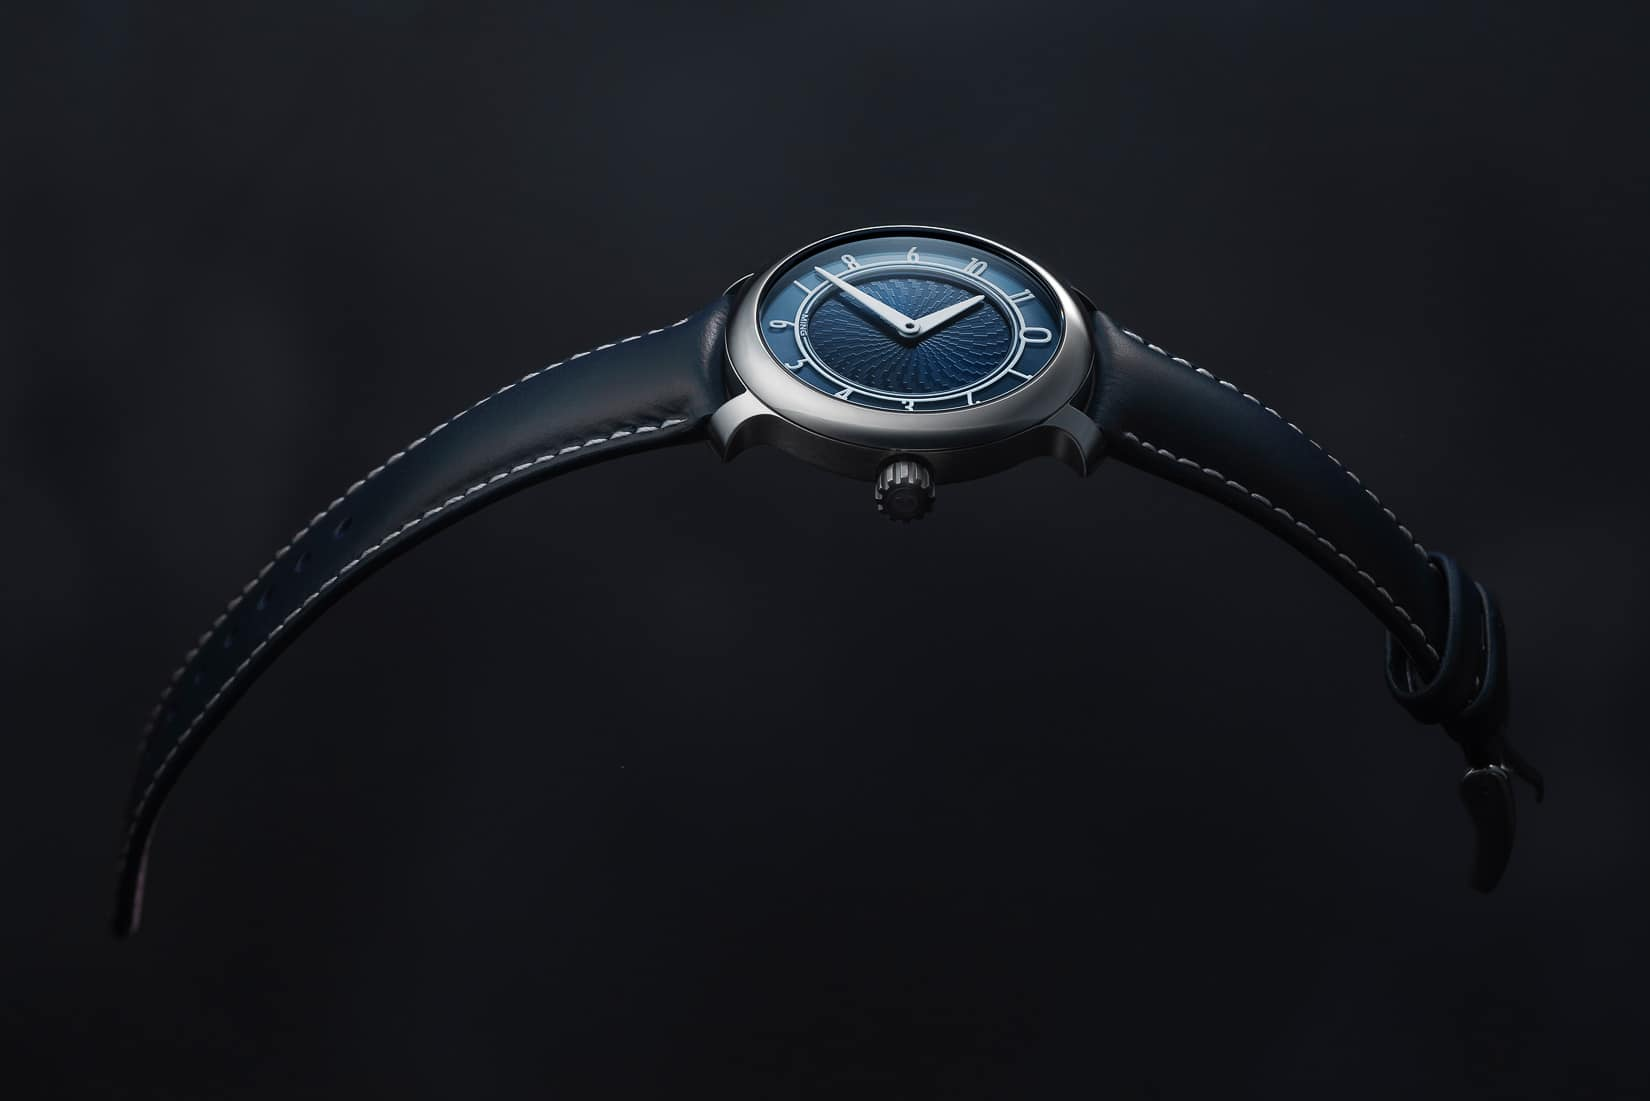 MING 17.01 Watch – Excite Seasoned Collectors And Accessible To New Ones